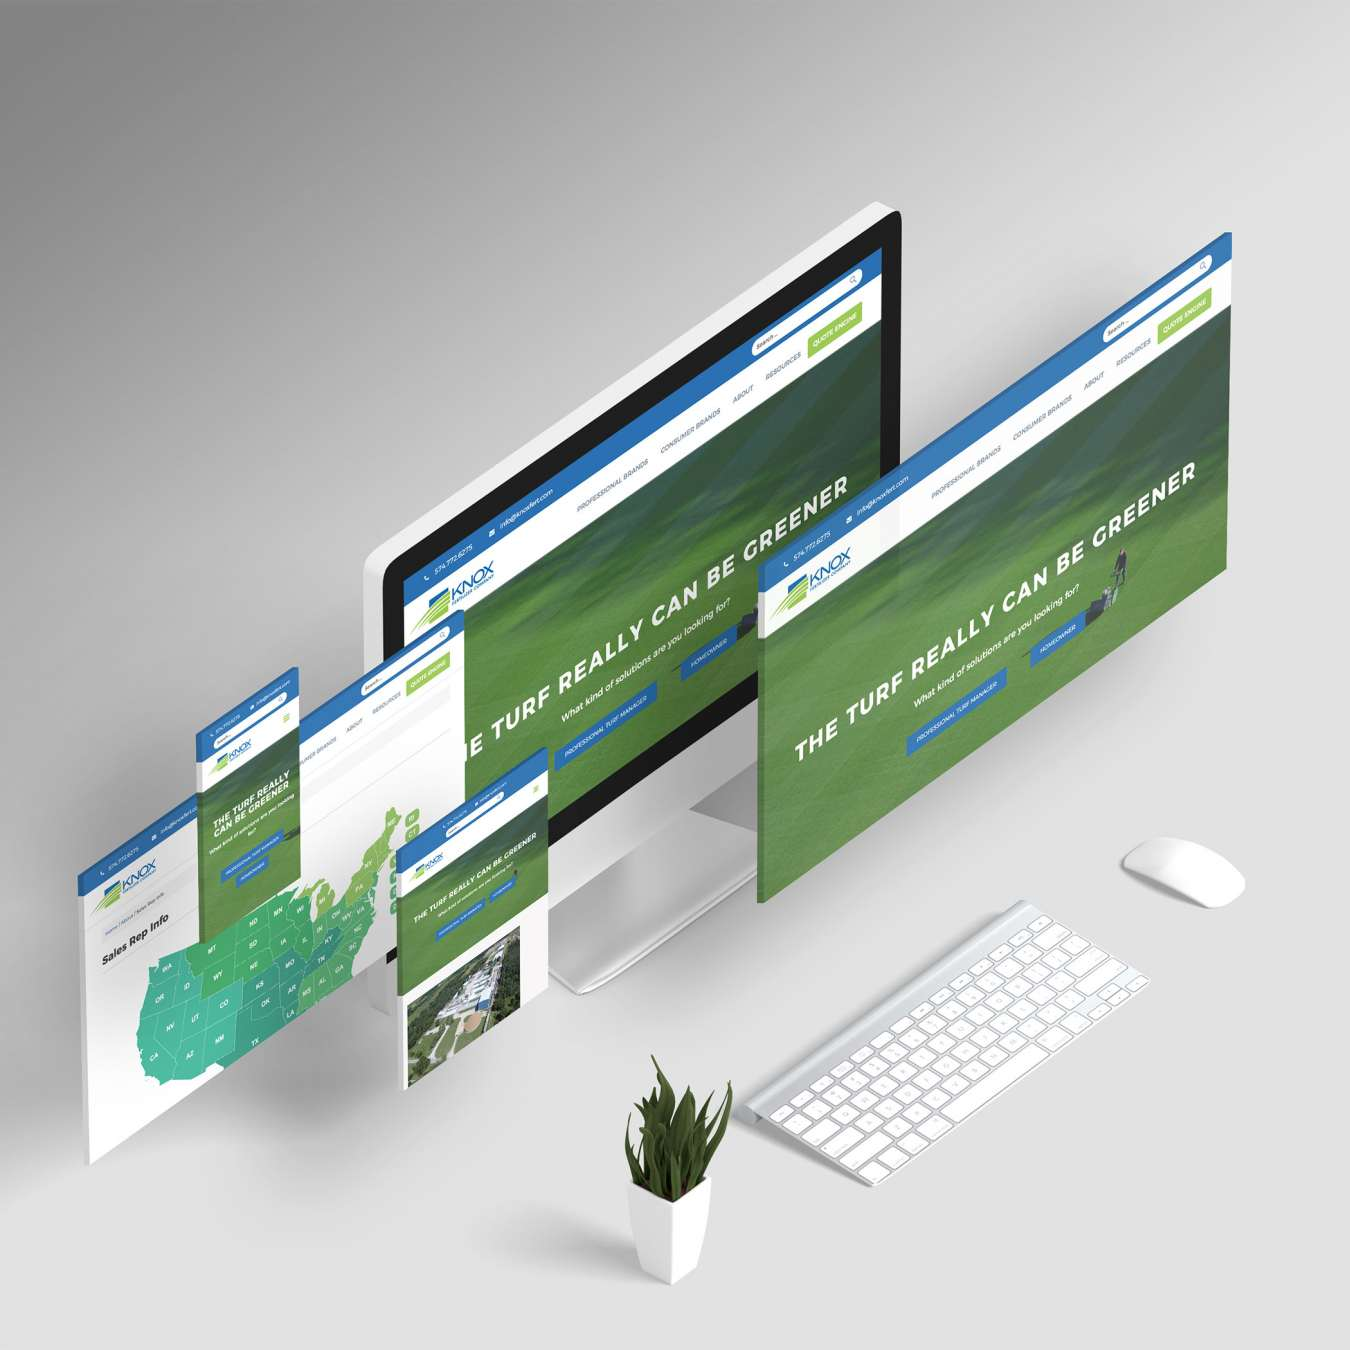 The totally redesigned responsive site for Knox Fertilizer Company